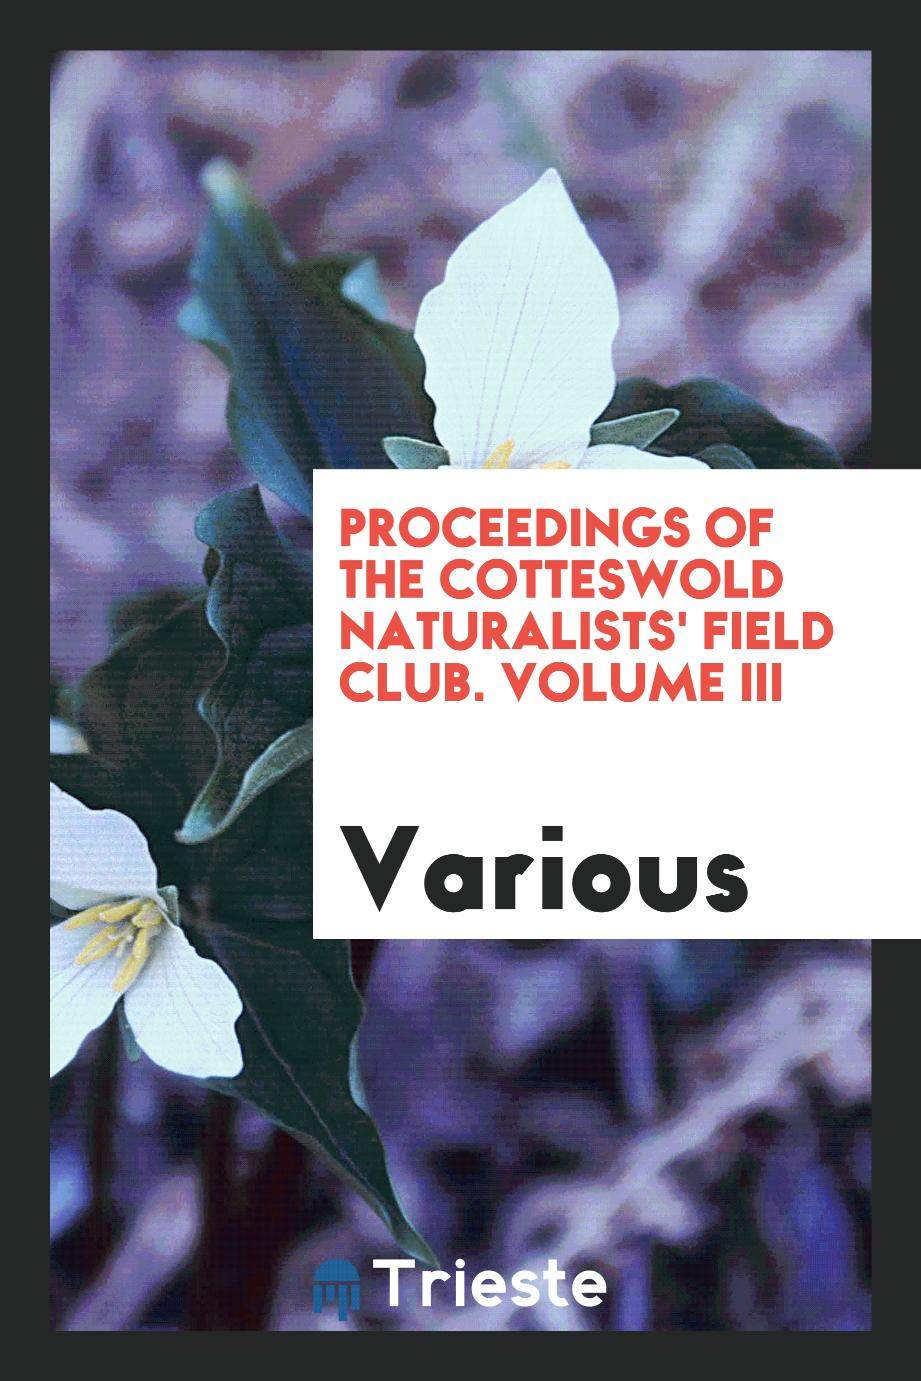 Proceedings of the Cotteswold Naturalists' Field Club. Volume III